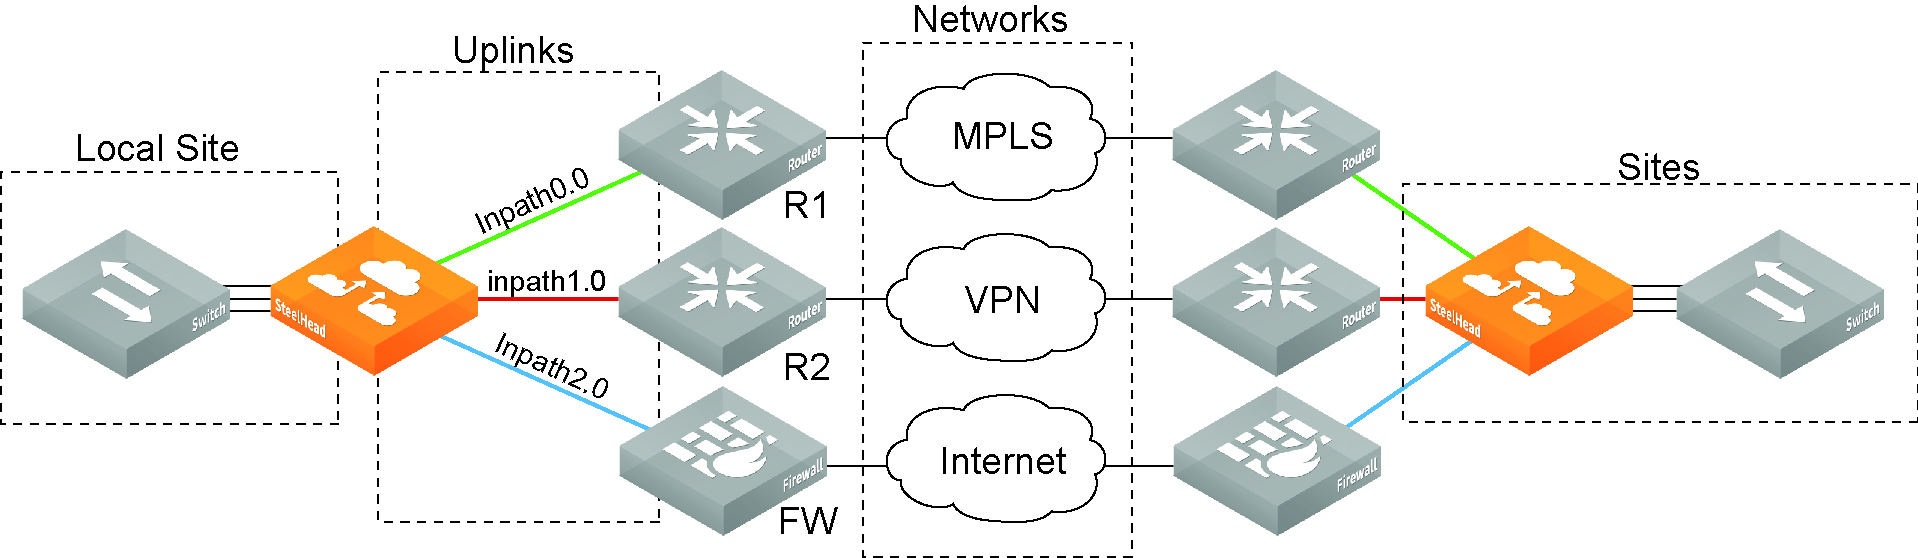 Figure: Network Topology